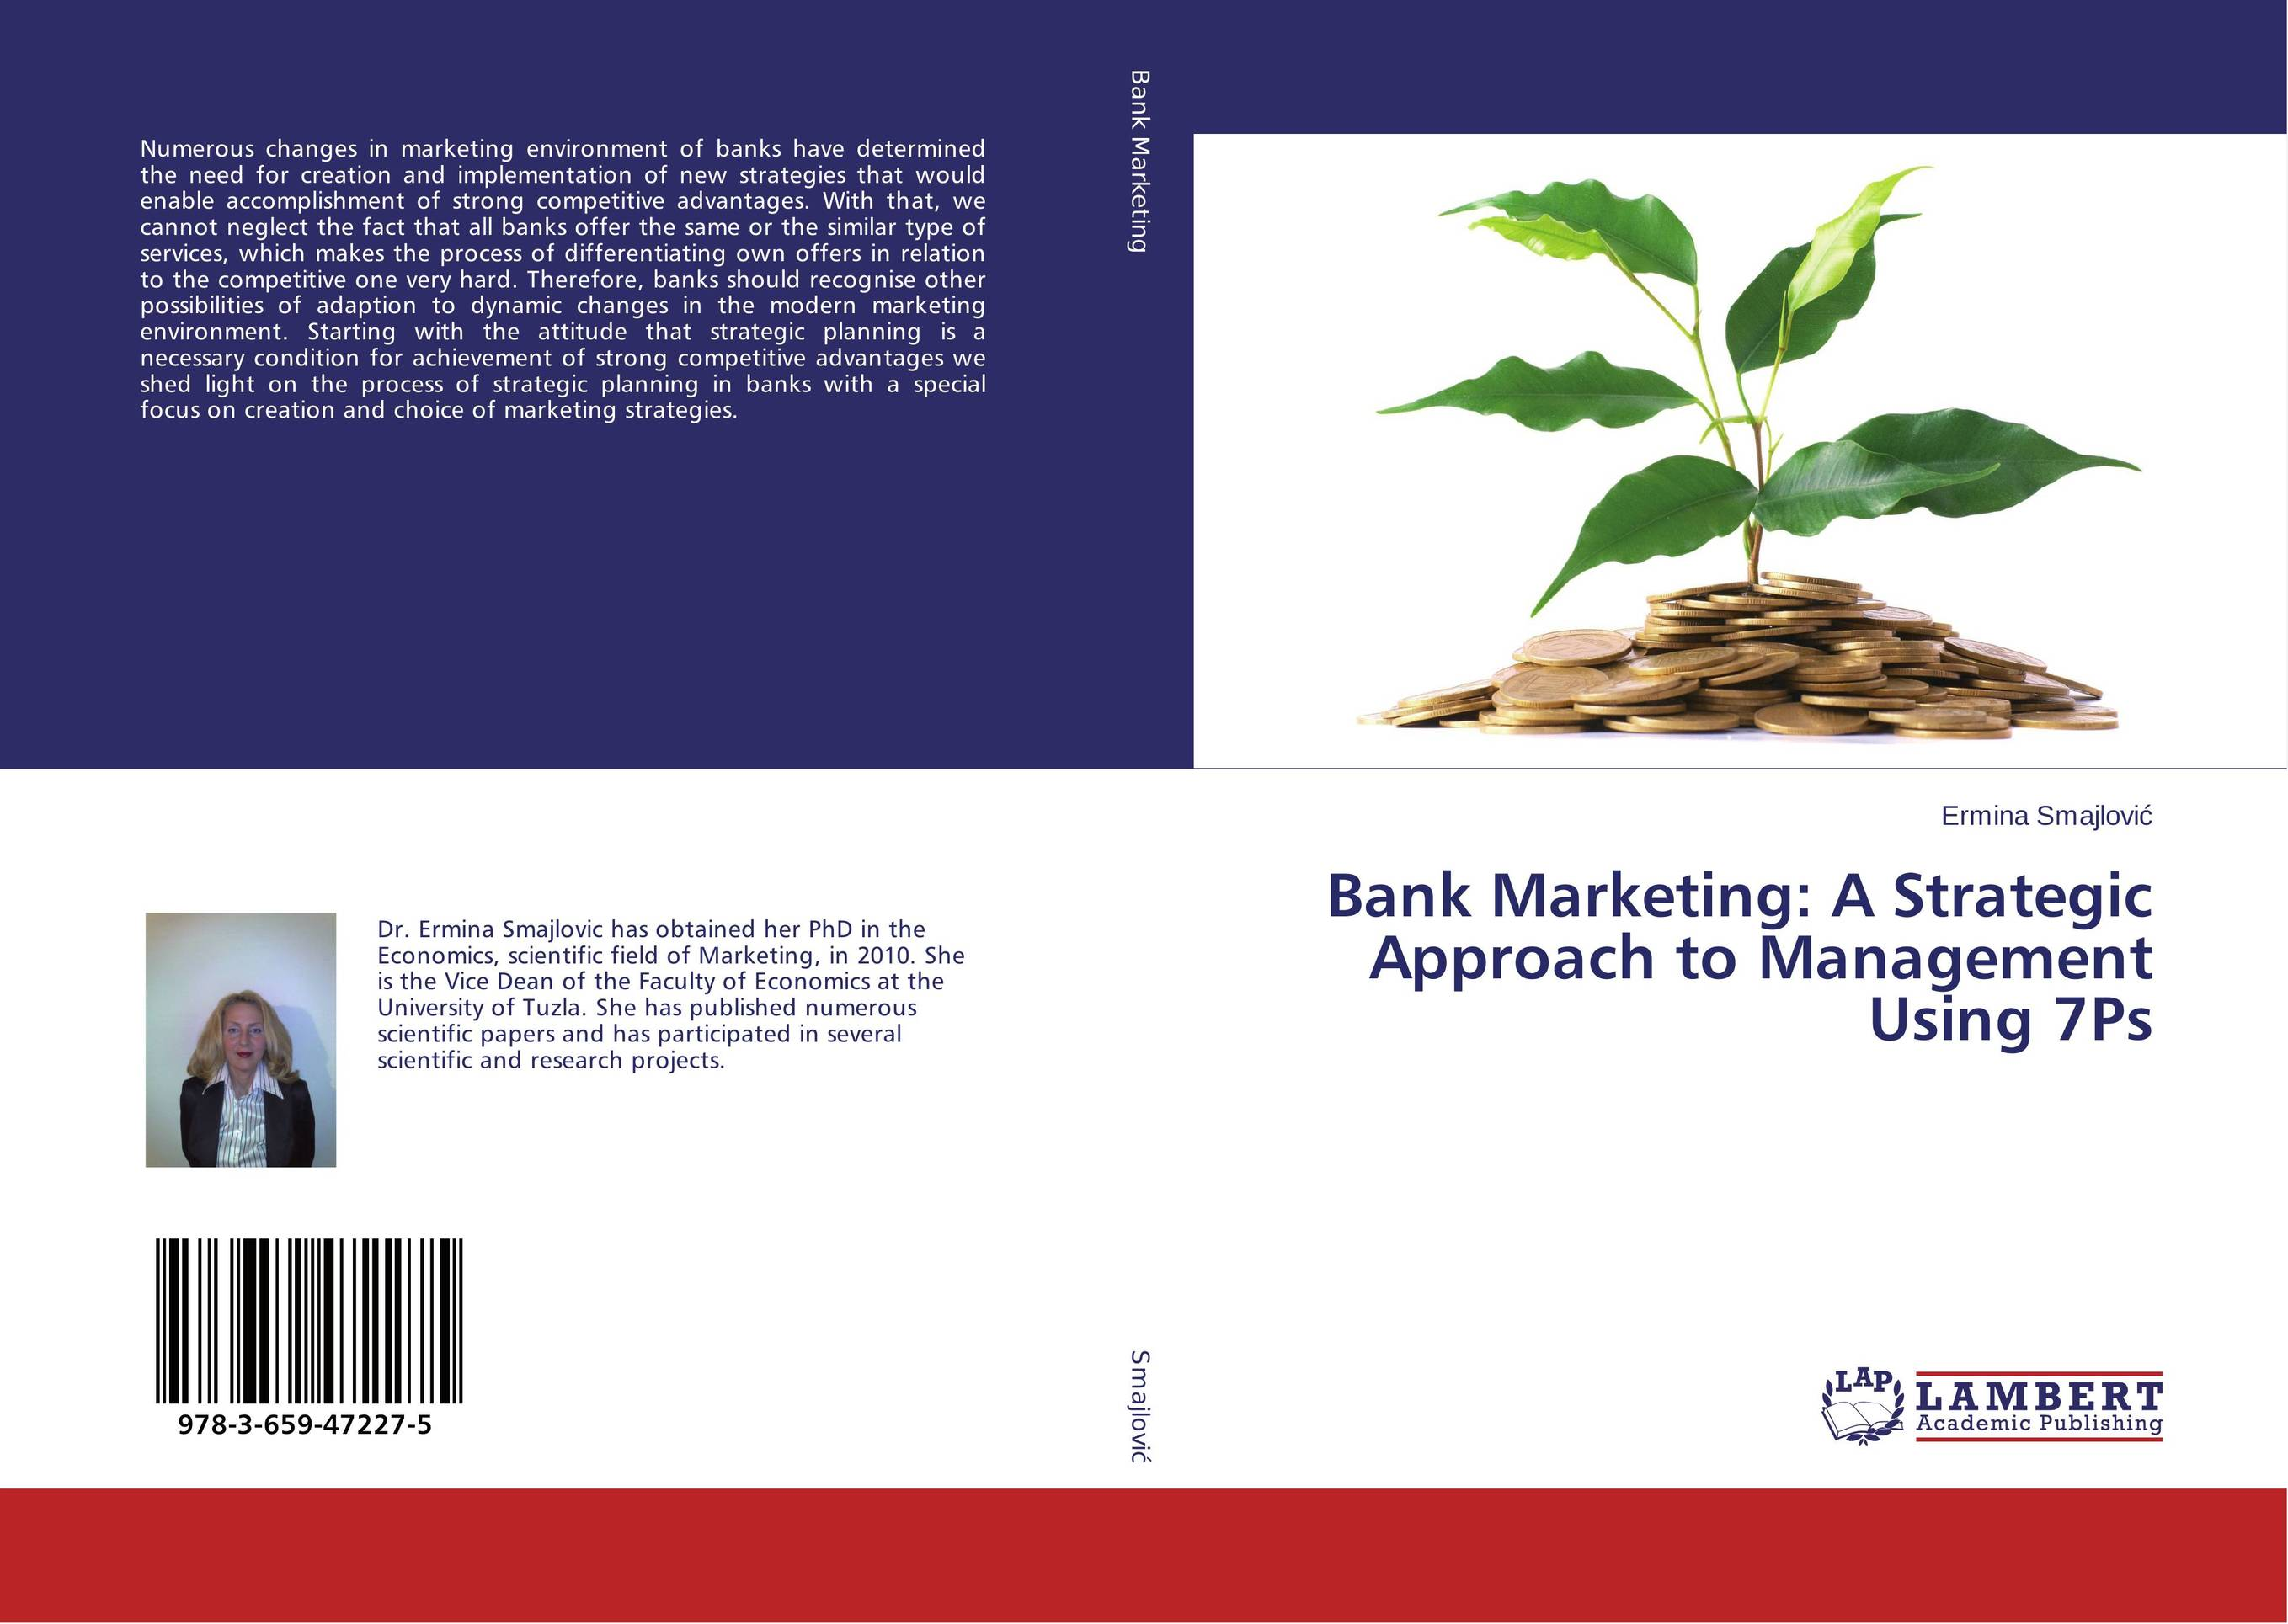 Bank Marketing: A Strategic Approach to Management Using 7Ps